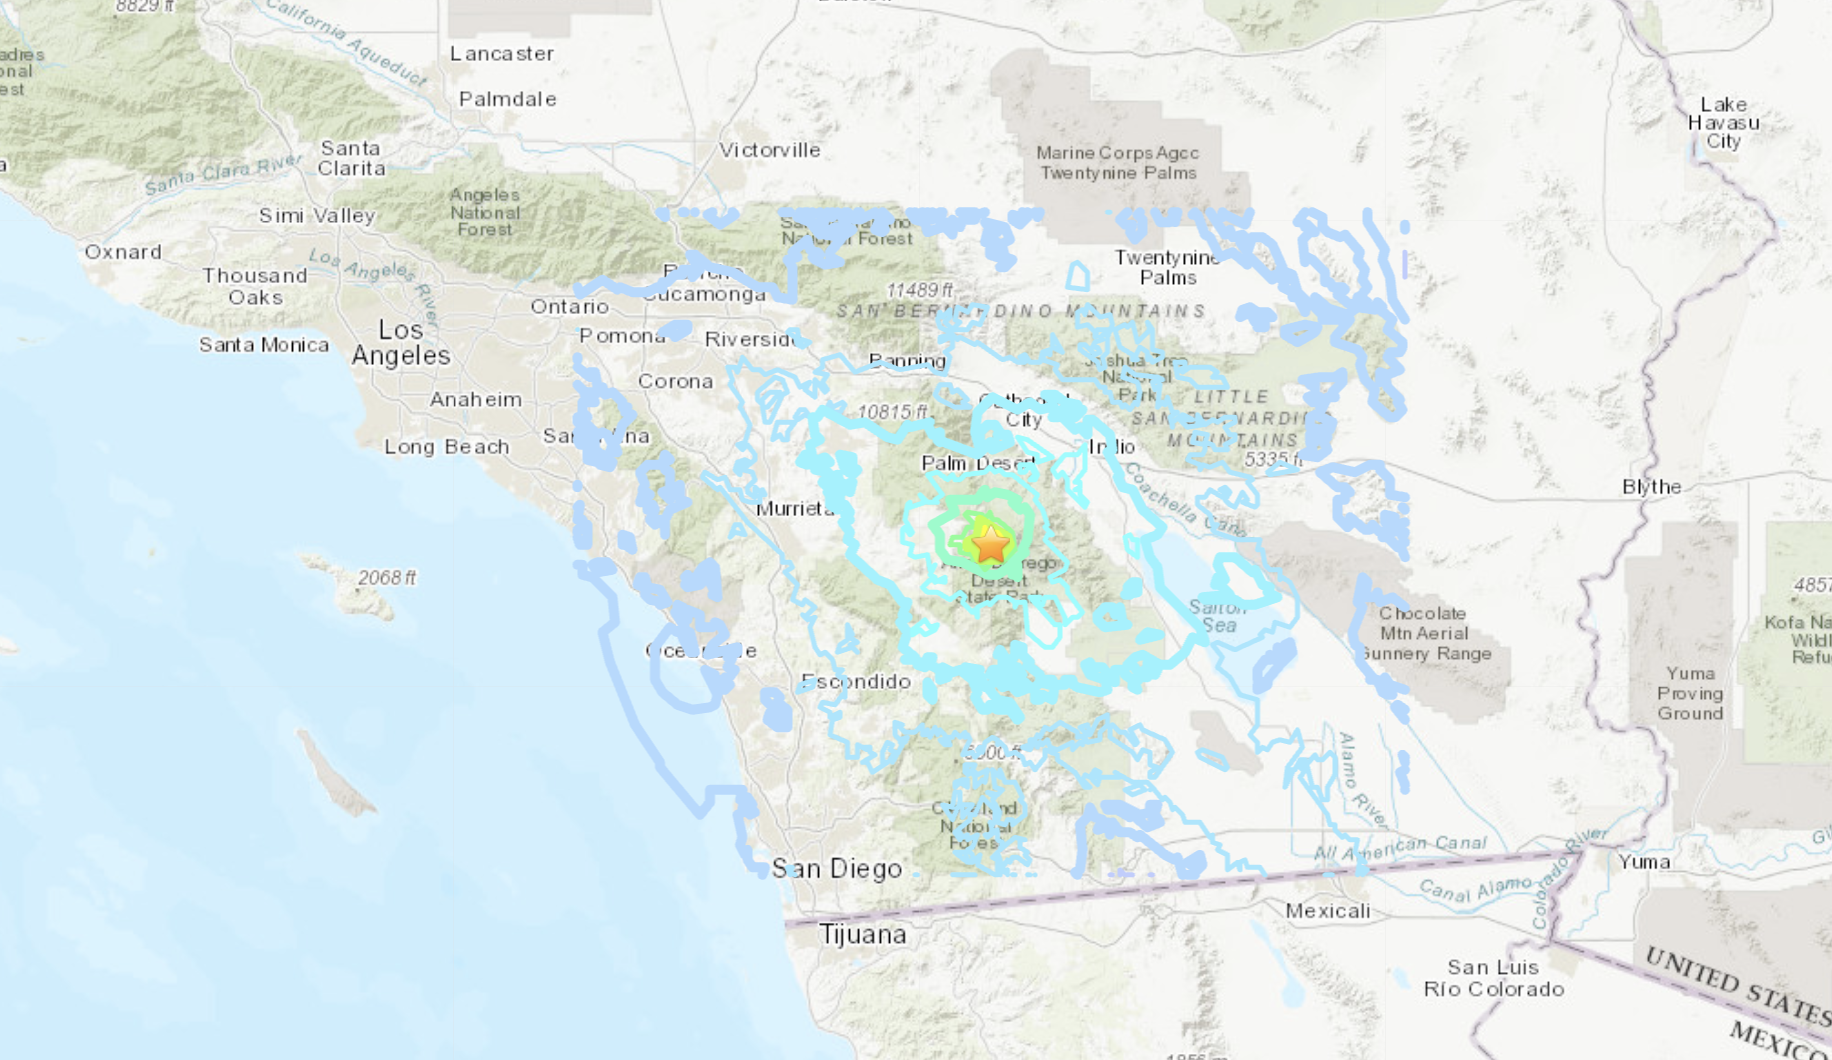 The location of a magnitude 4.9 earthquake that struck near Anza on April 3, 2020. (USGS)